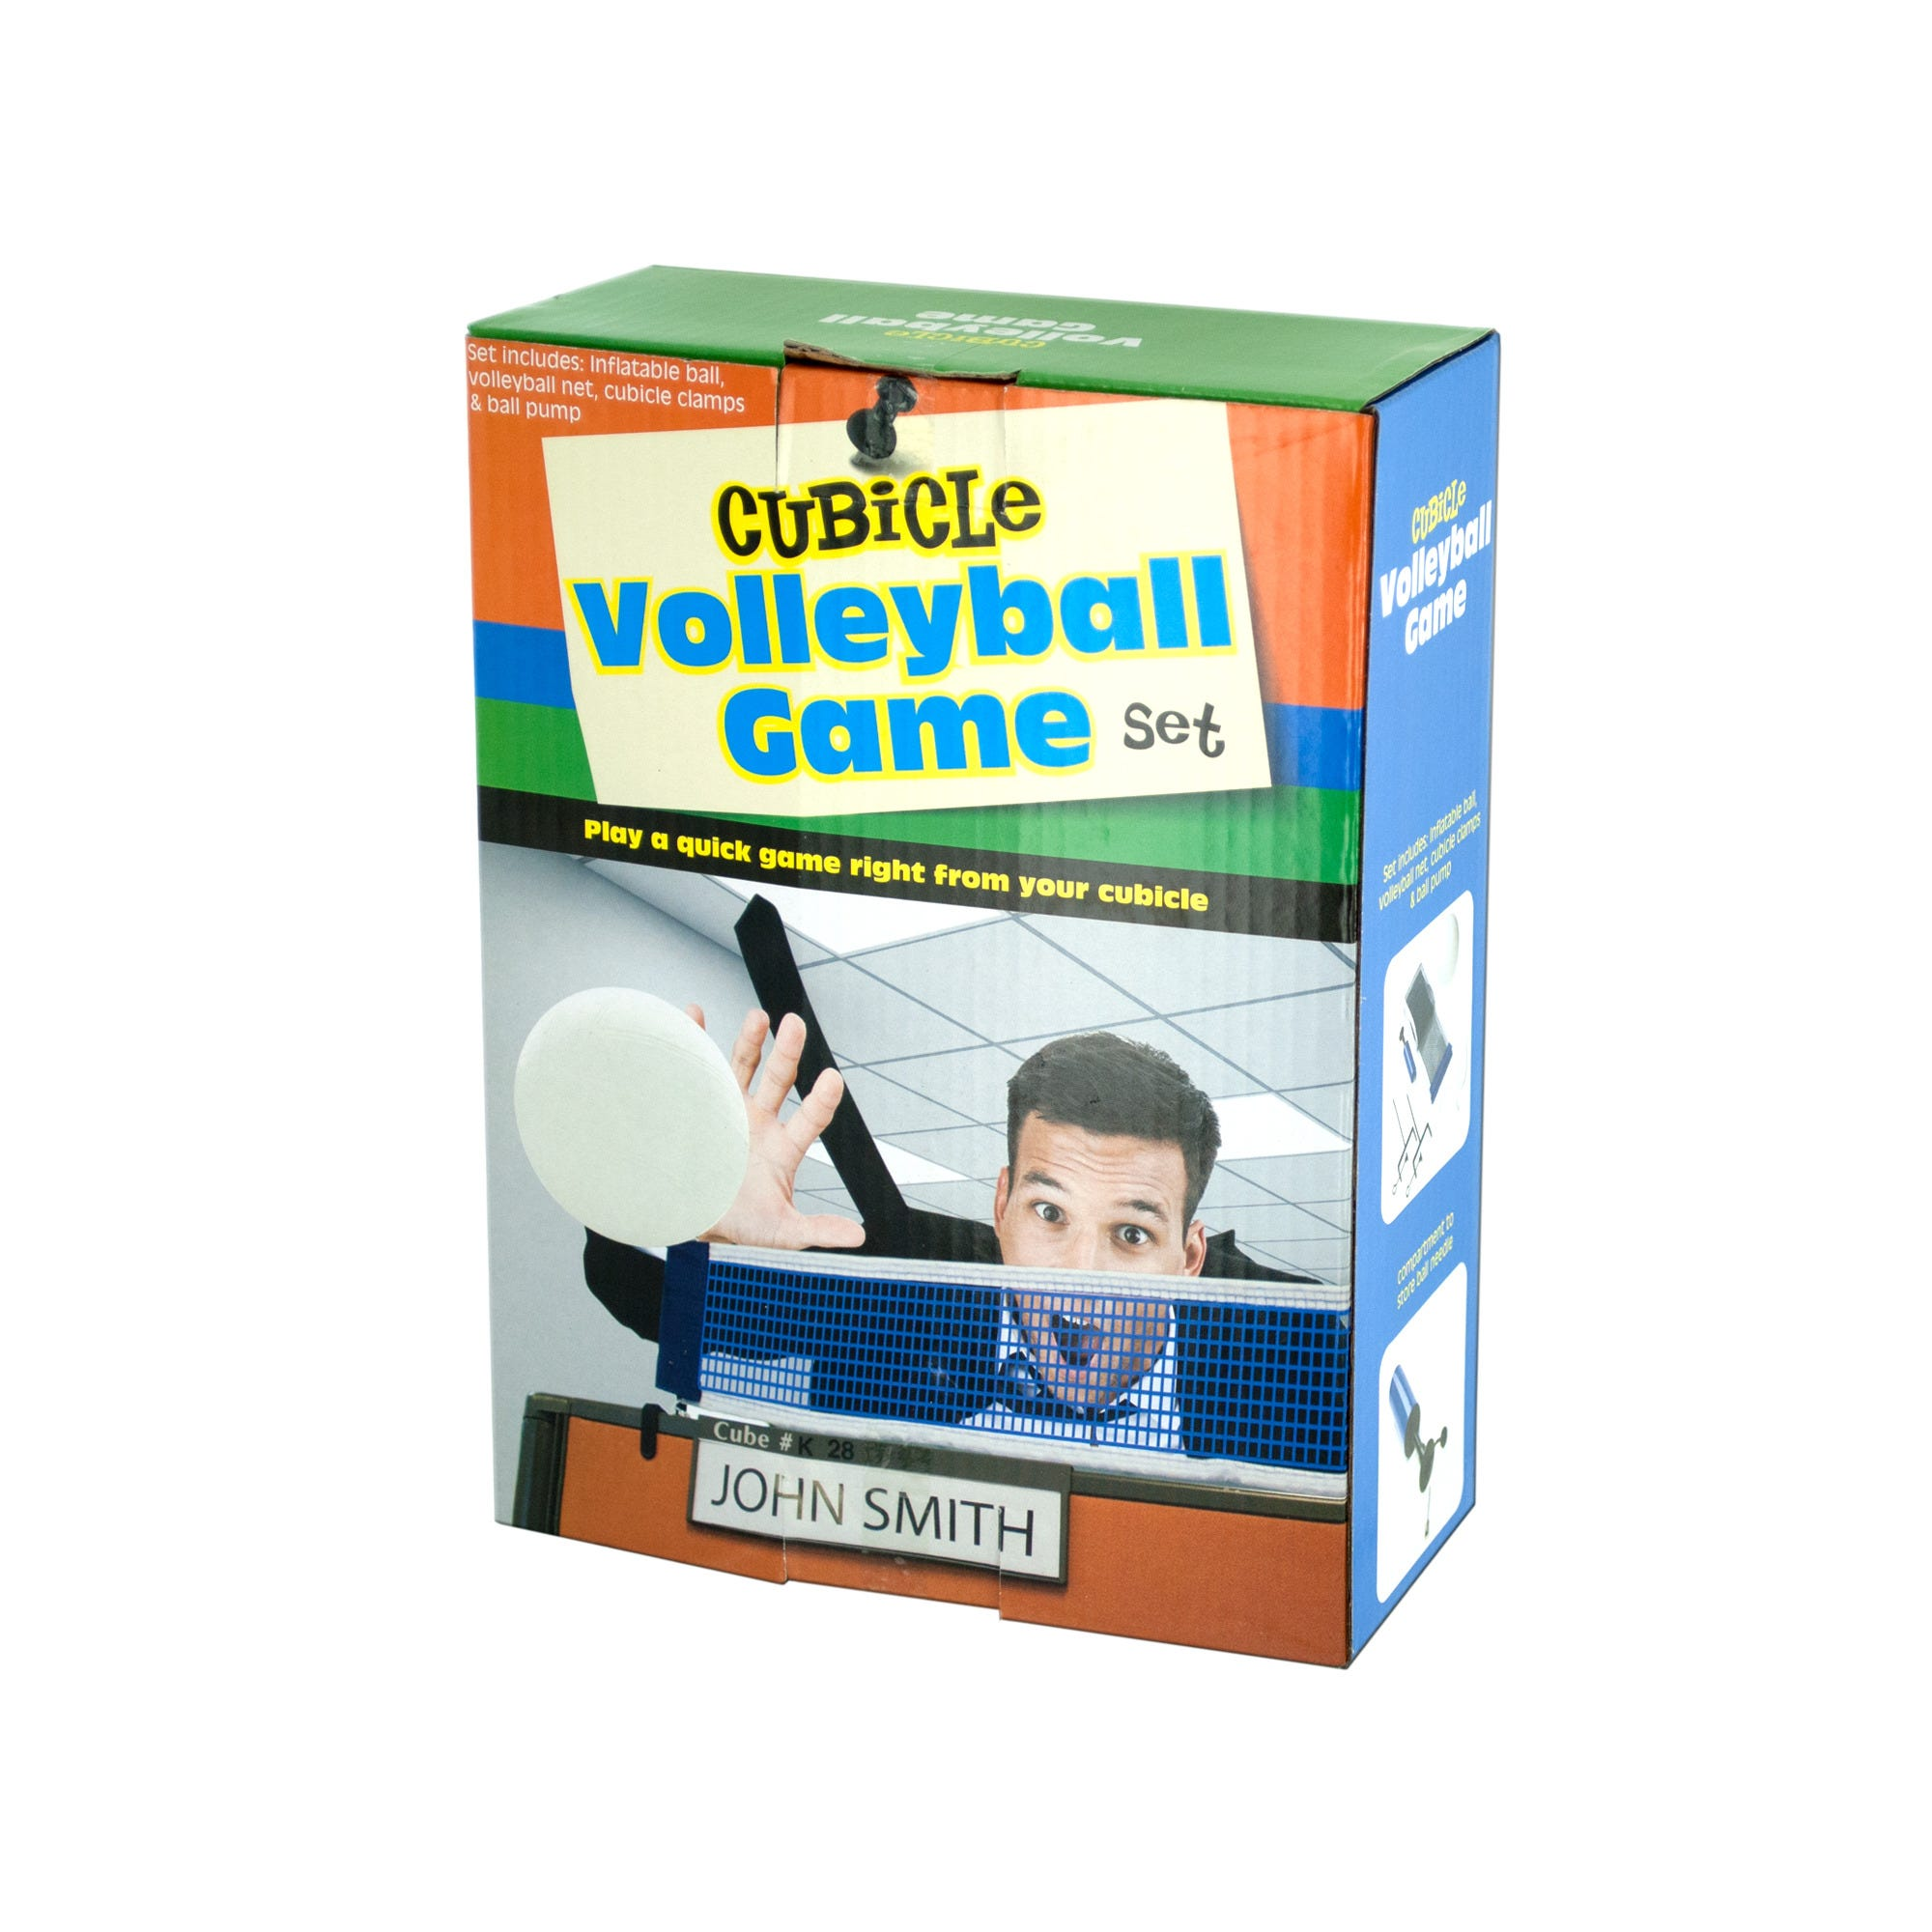 Cubicle VOLLEYBALL Game Set- Qty 4